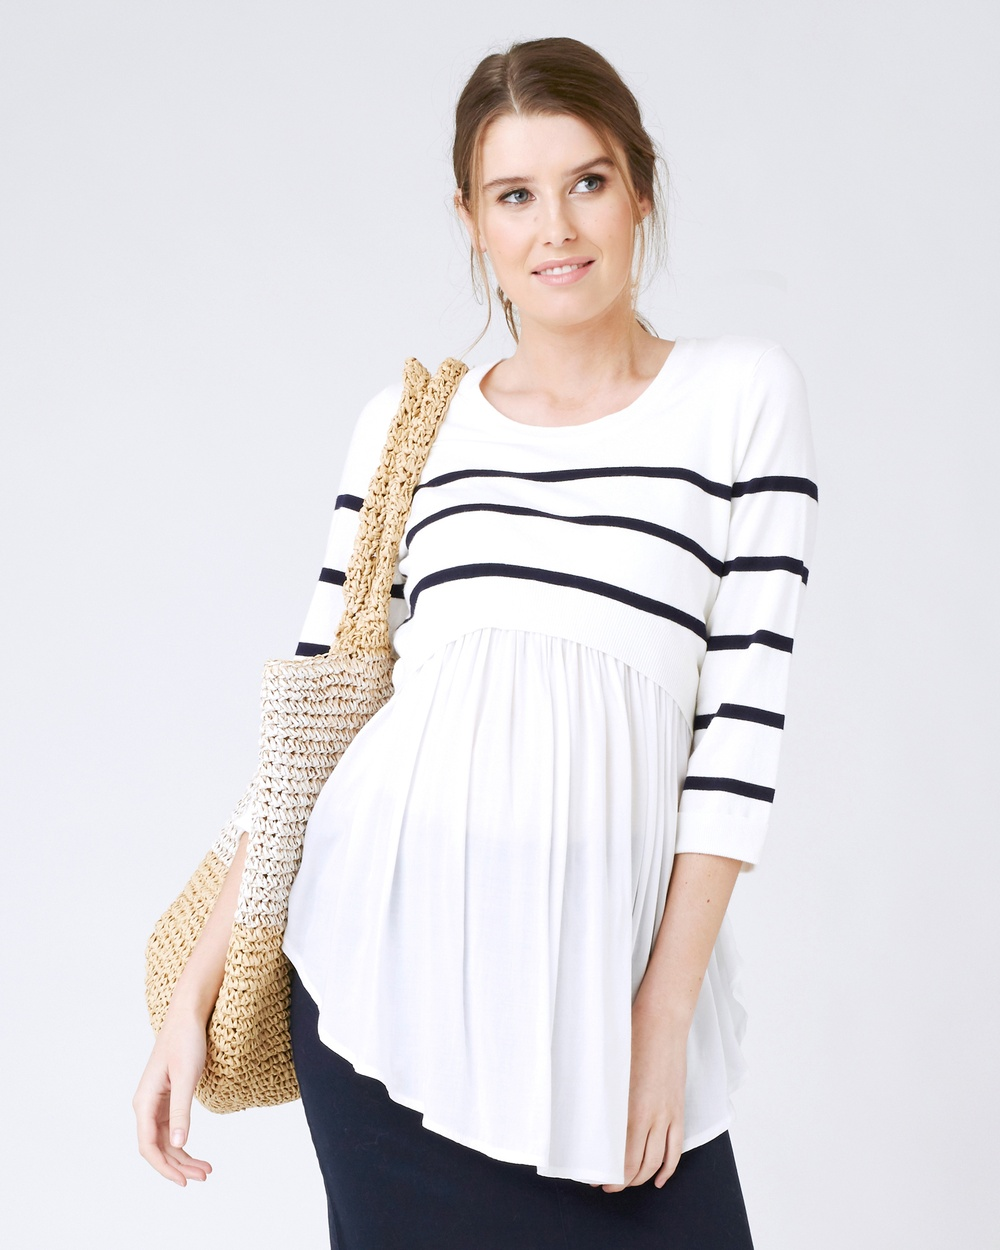 Photo of Ripe Maternity Ripe Maternity Maritime Babydoll Nursing Knit Tops Ivory/Navy Maritime Babydoll Nursing Knit - The Maritime Babydoll Nursing Knit by Ripe will be your favourite piece for both work and the weekend. You'll love the easy, discreet 'up/down' nursing access for breastfeeding post pregnancy too. Our model is wearing a size small. She usually takes a Standard AU10 size, is 5'10